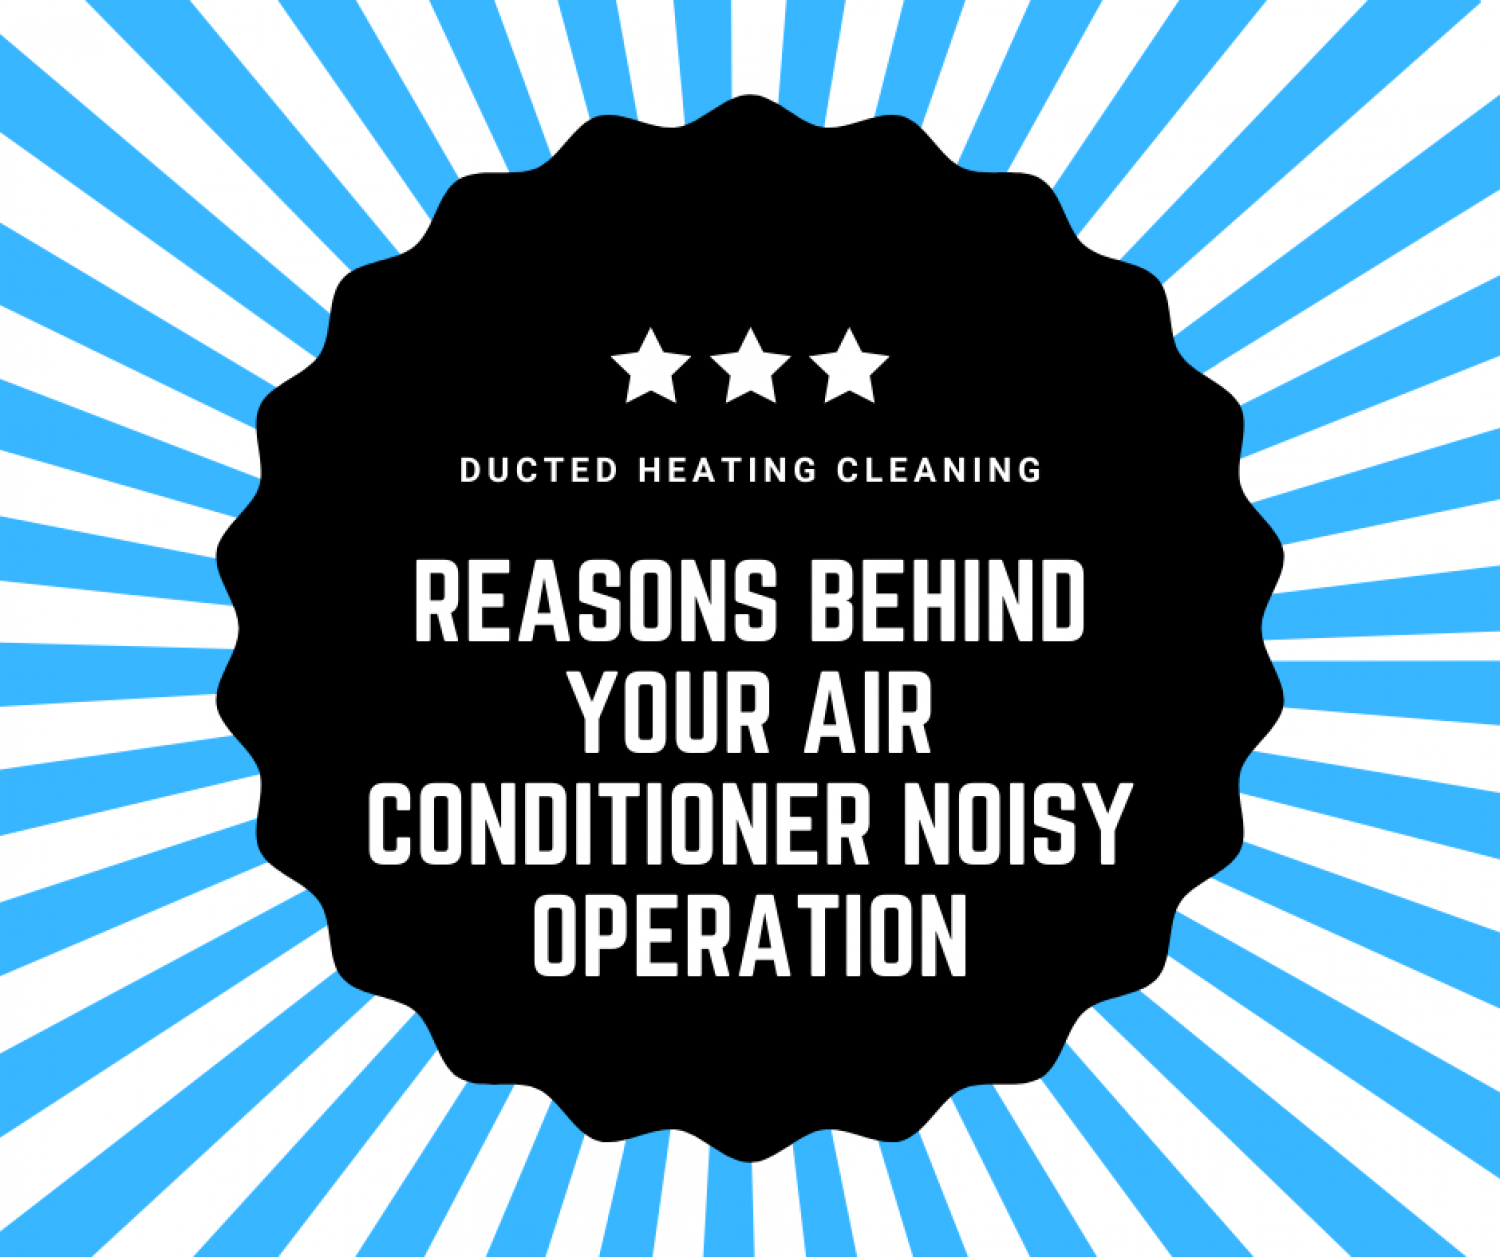 Reasons Behind Your Air Conditioner Noisy Operation Infographic